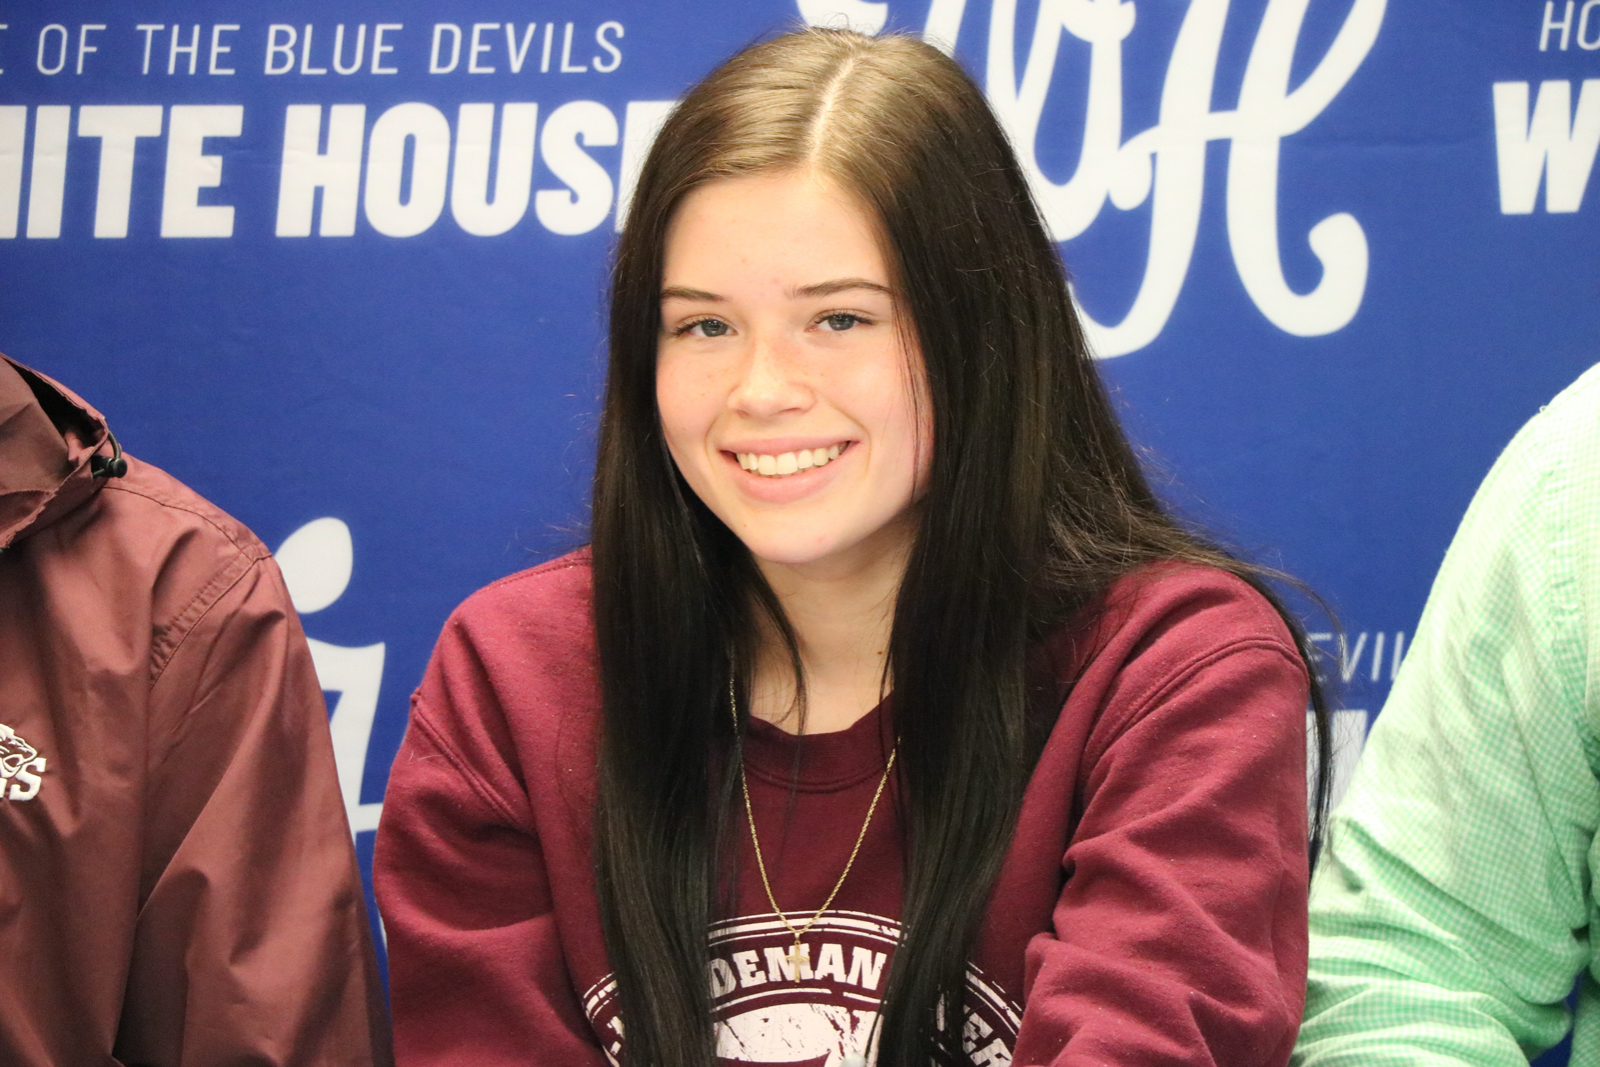 Tennis Photos: Corbitt signs with Freed-Hardeman